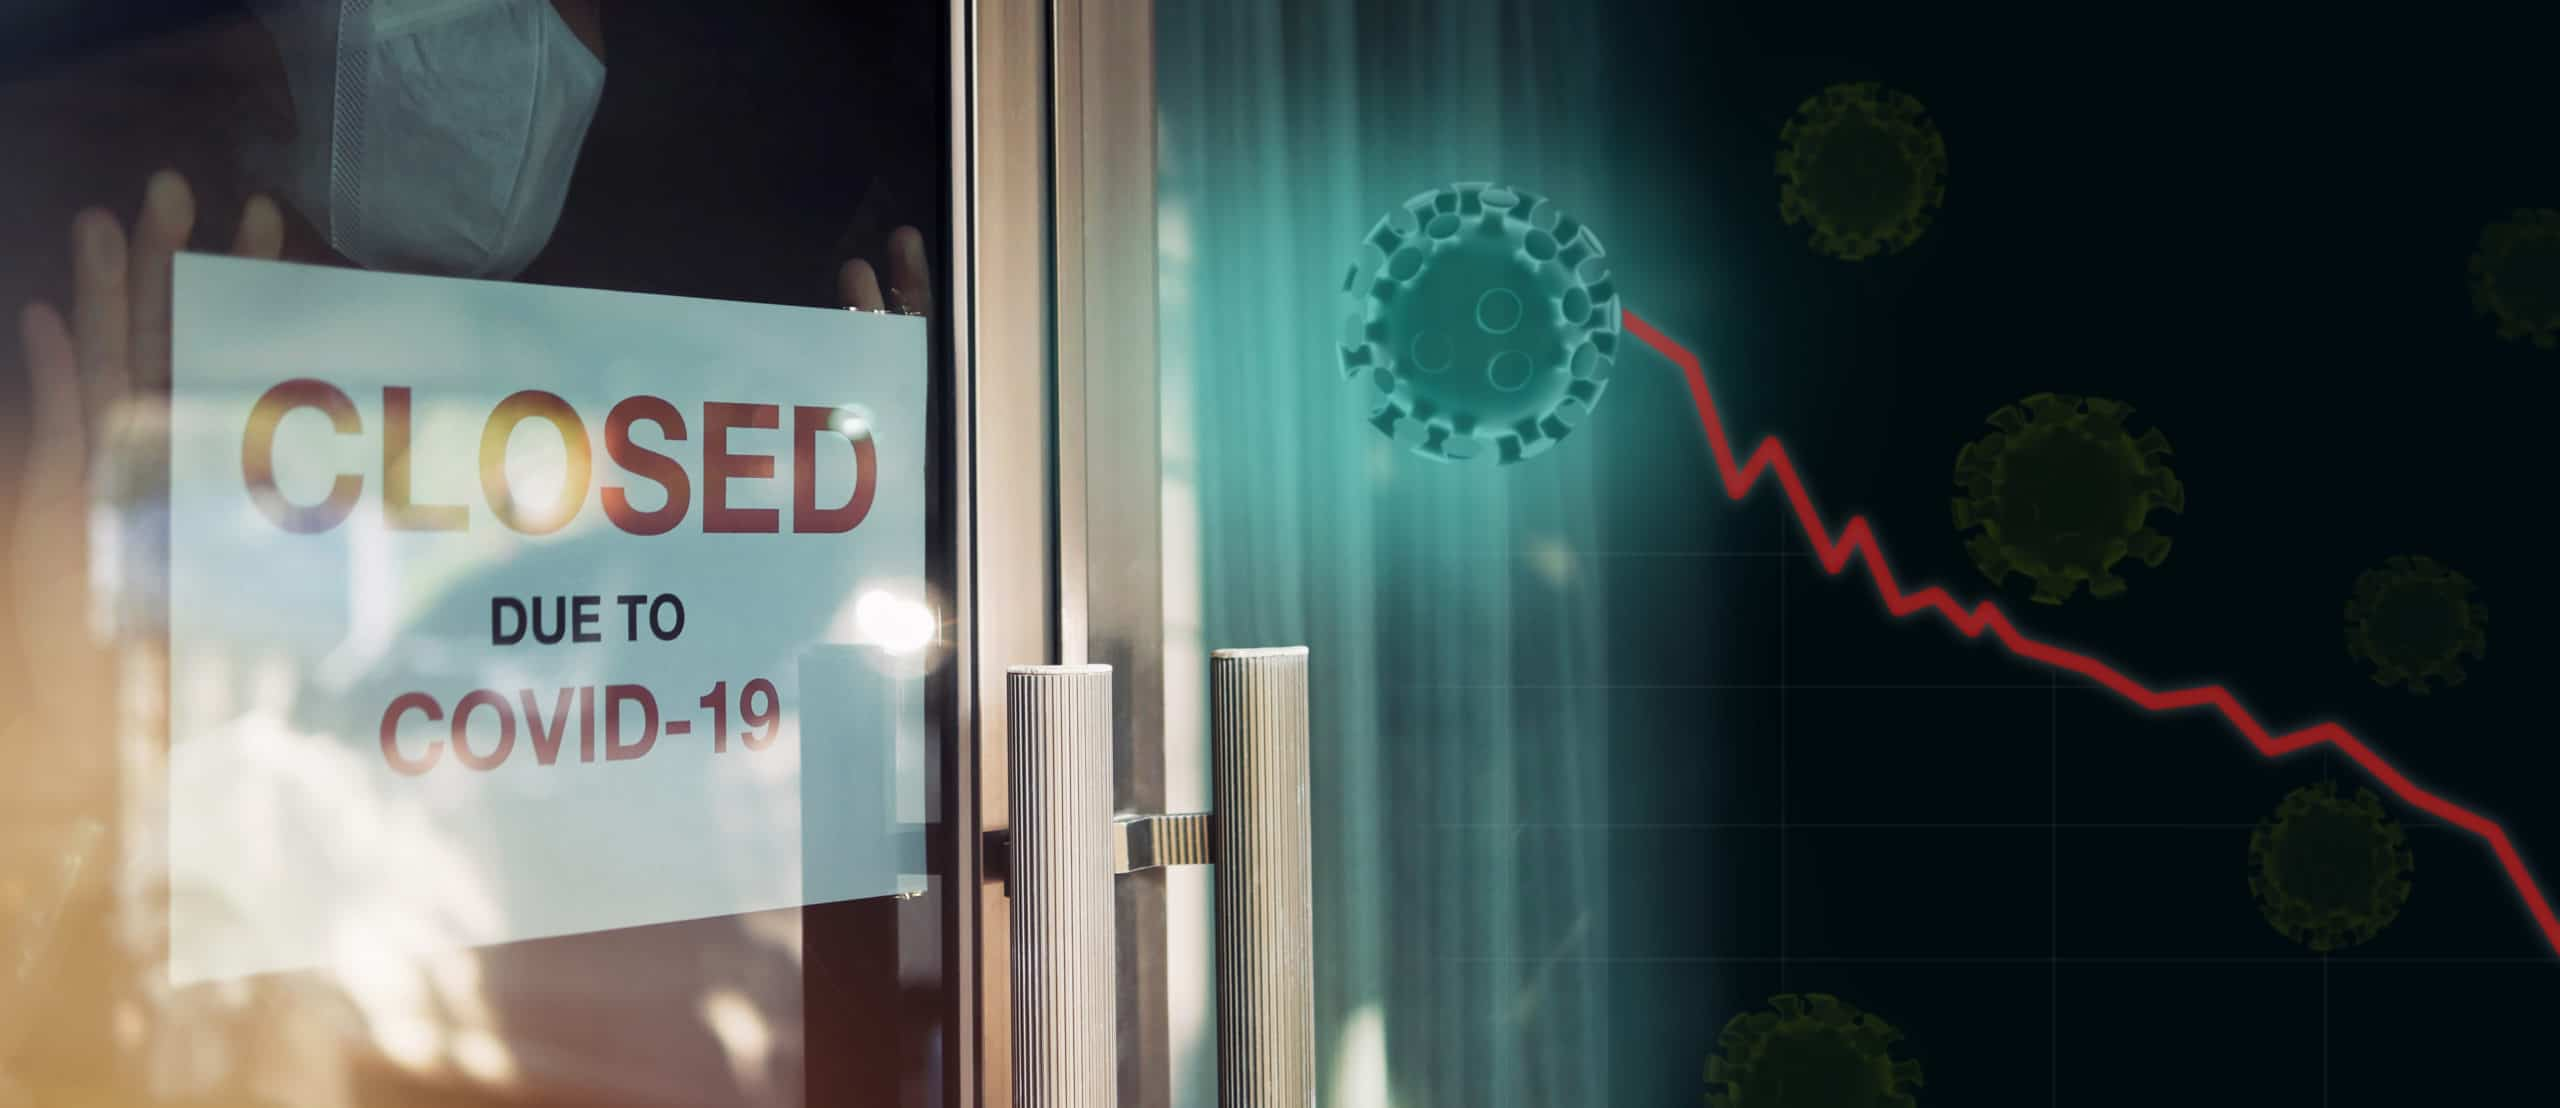 Business office is closed, bankrupt business, global economic crisis impact by Coronavirus COVID-19 pandemic concepts. Unidentified person wearing mask put closed sign on front door with 3d viruses recession graph